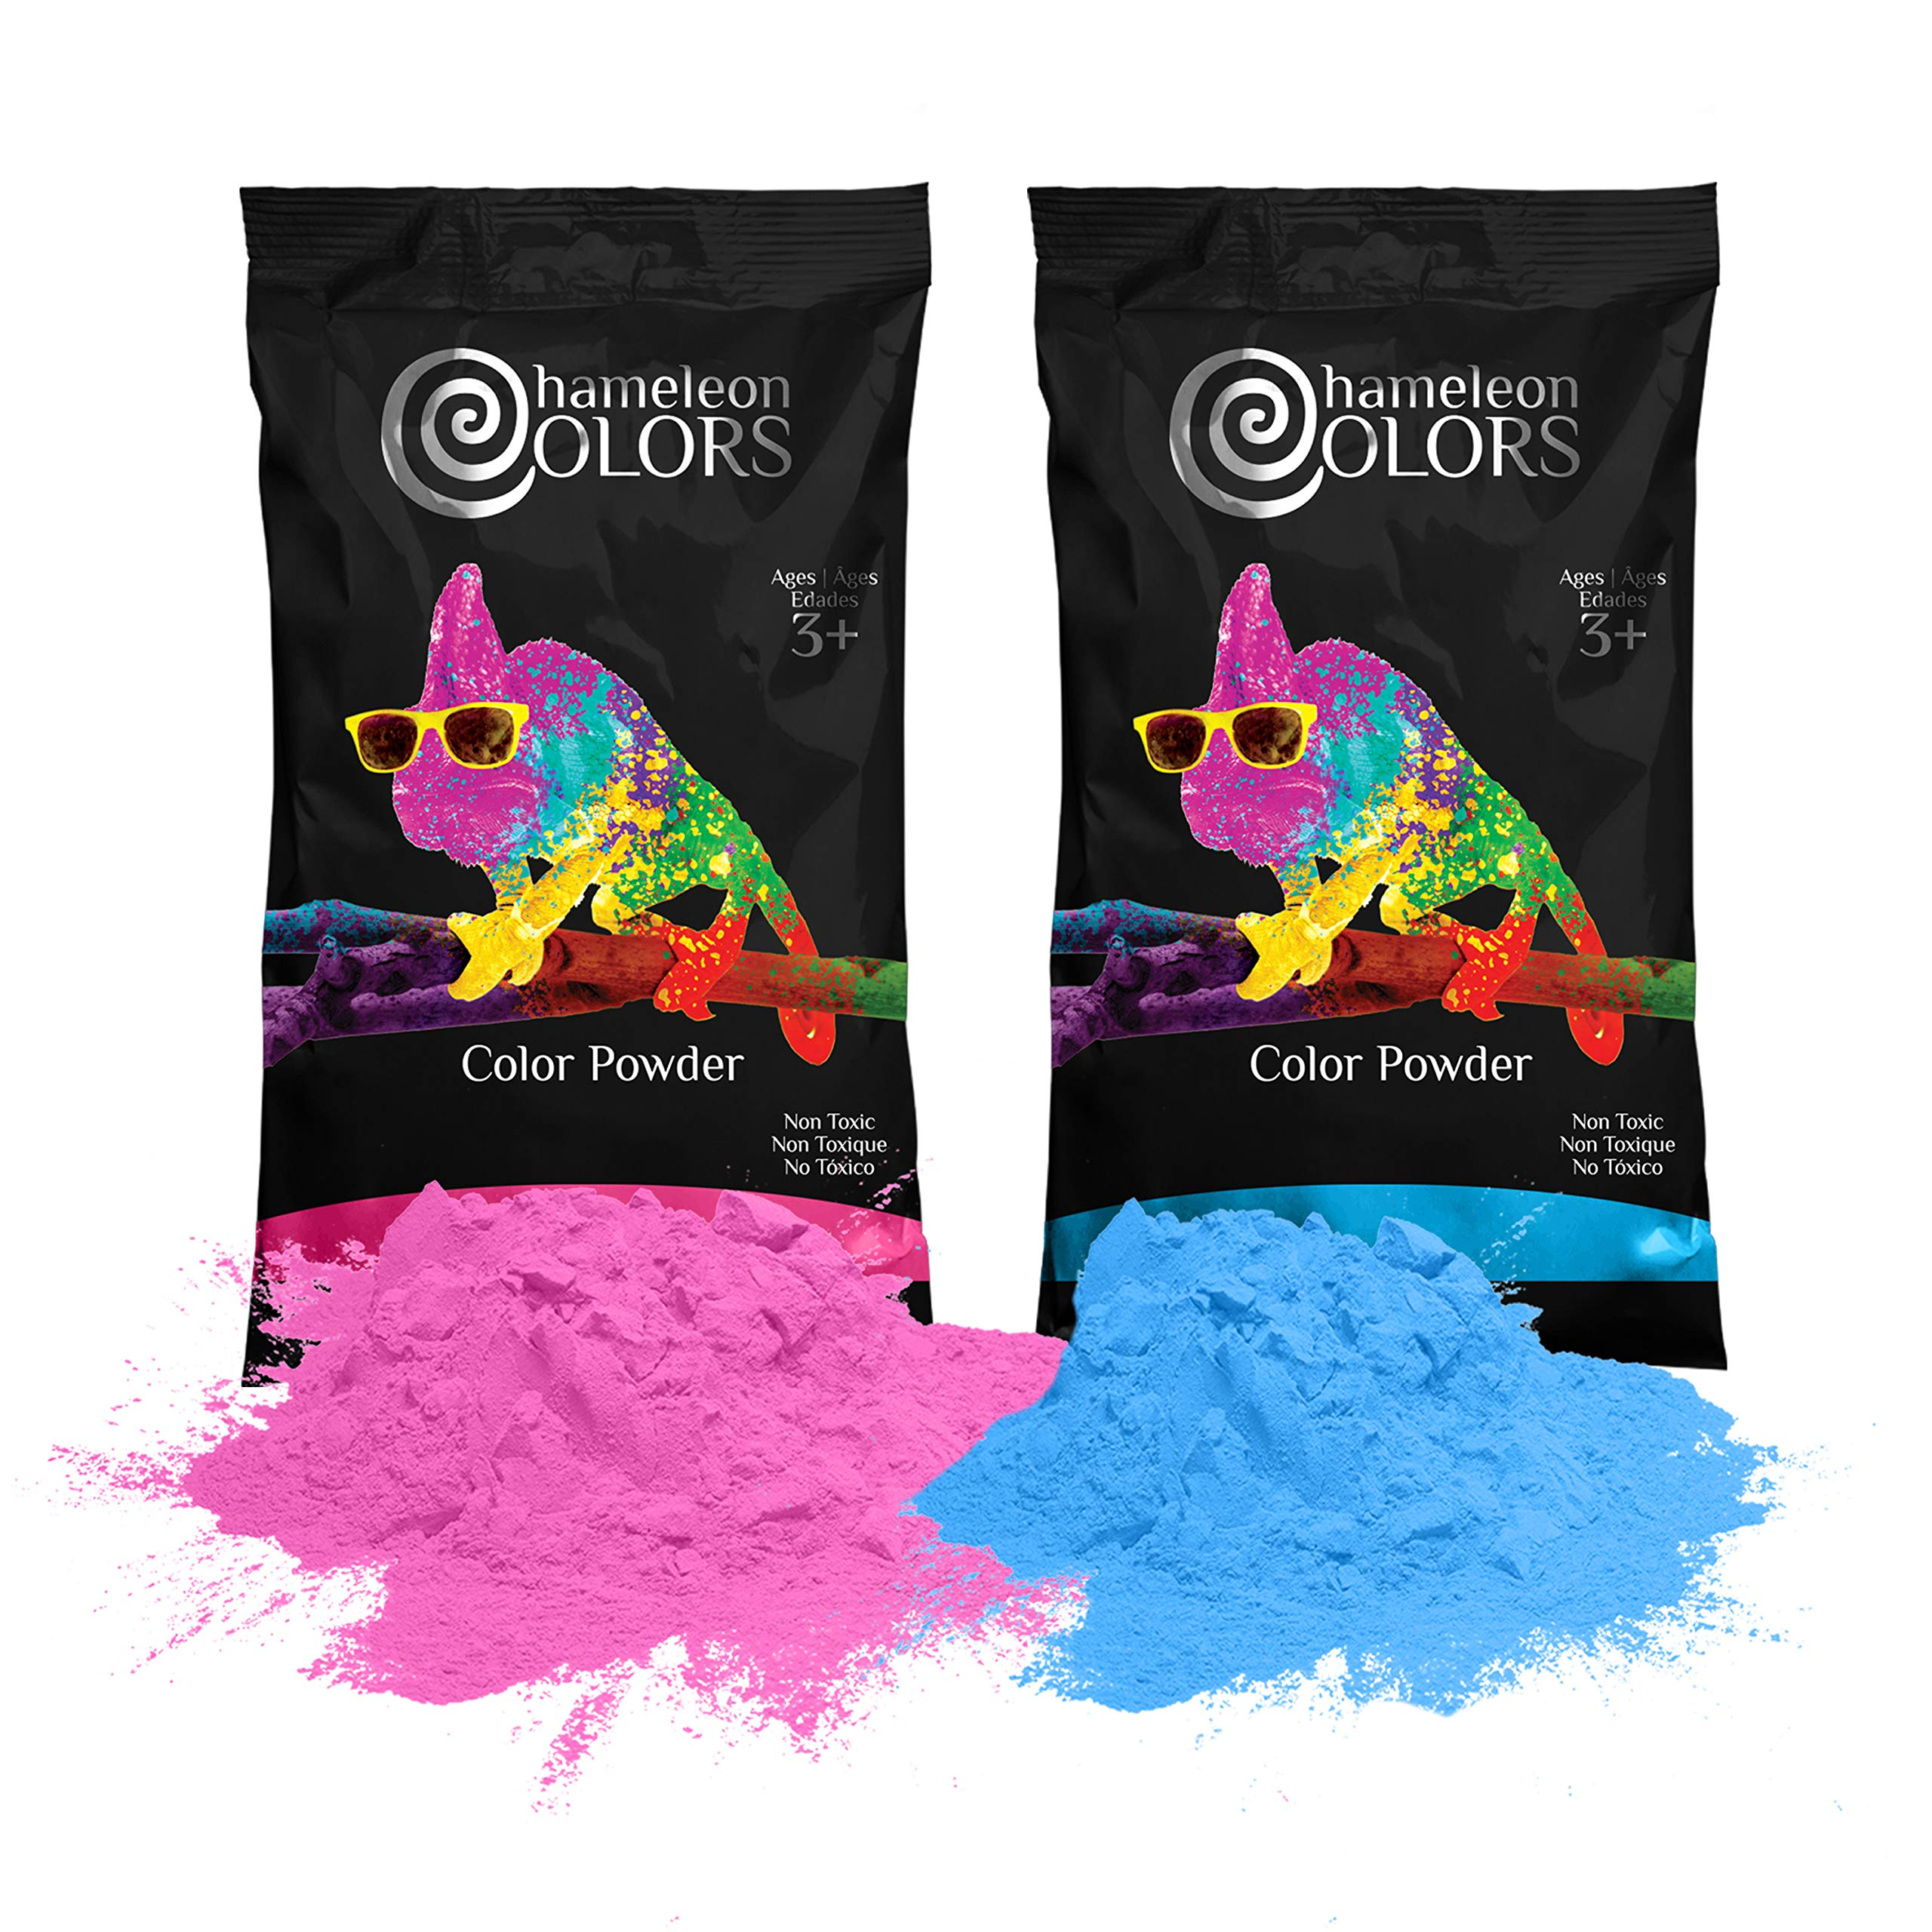 Holi Color Powder Gender Reveal by Chameleon Colors – 1lb Blue and 1lb Pink. Same Premium, Authentic Product Used for a Color Run, 5k, etc.